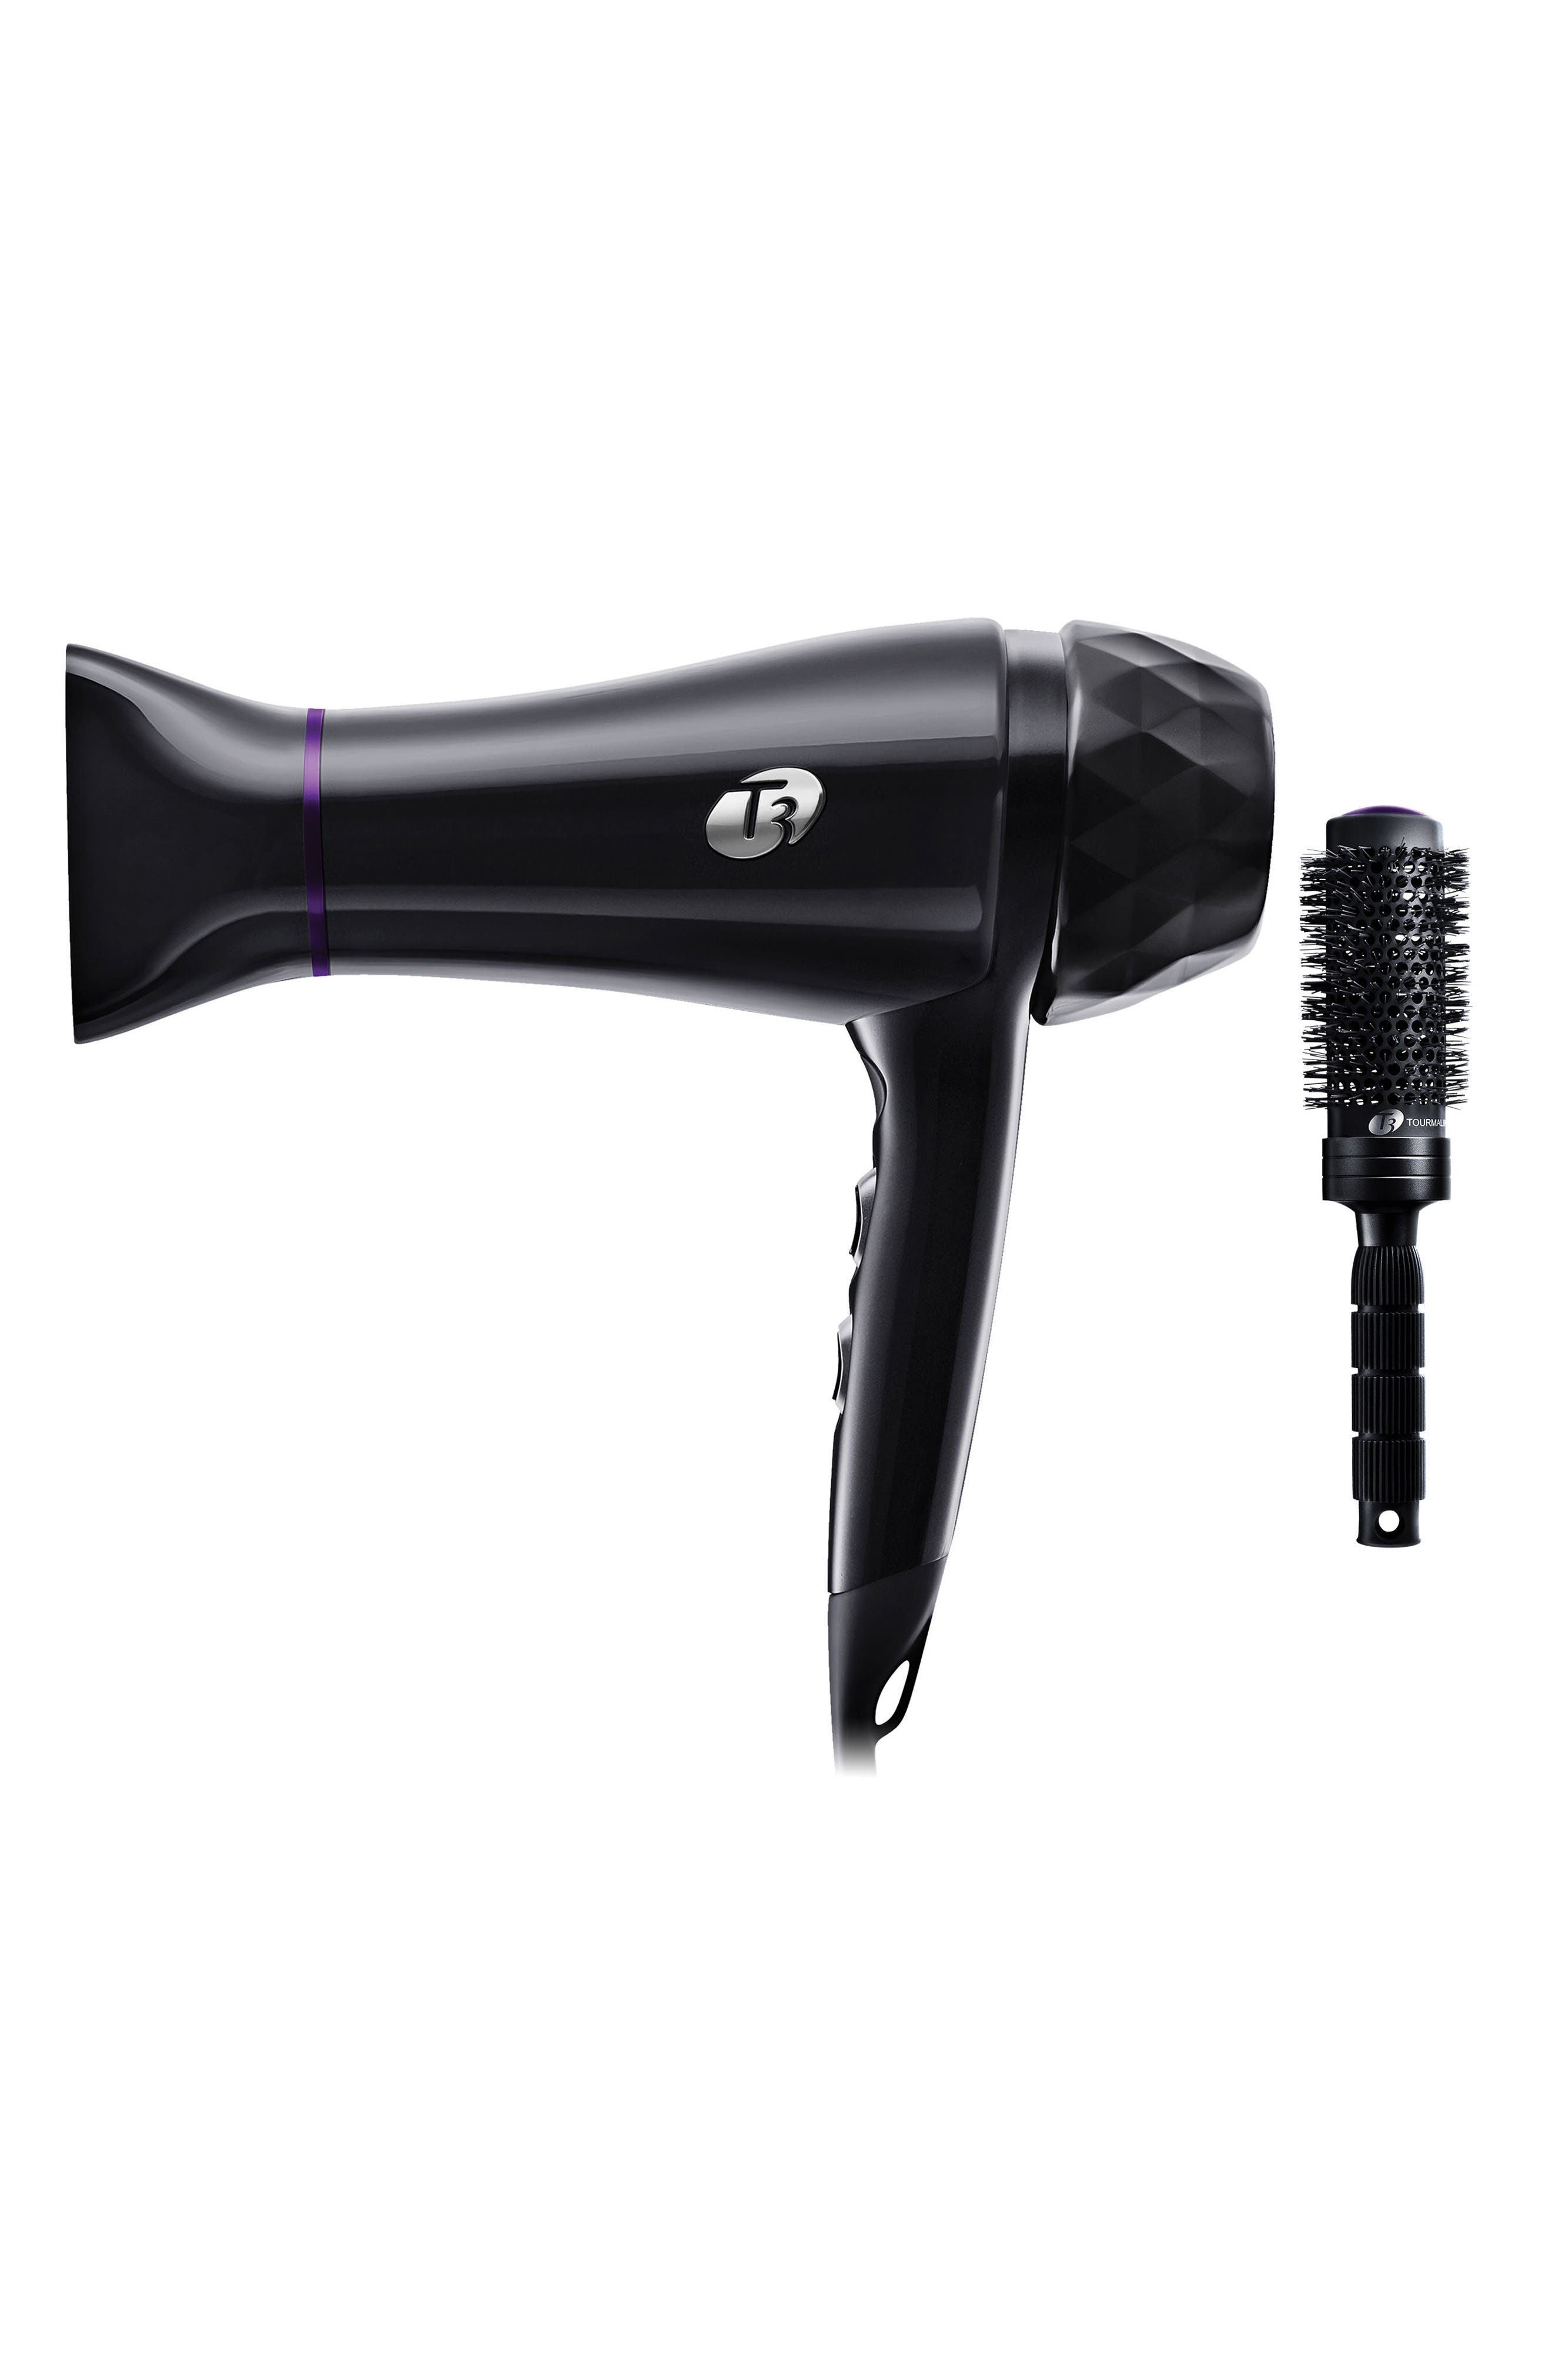 Main Image - T3 Featherweight Luxe 2i Dryer